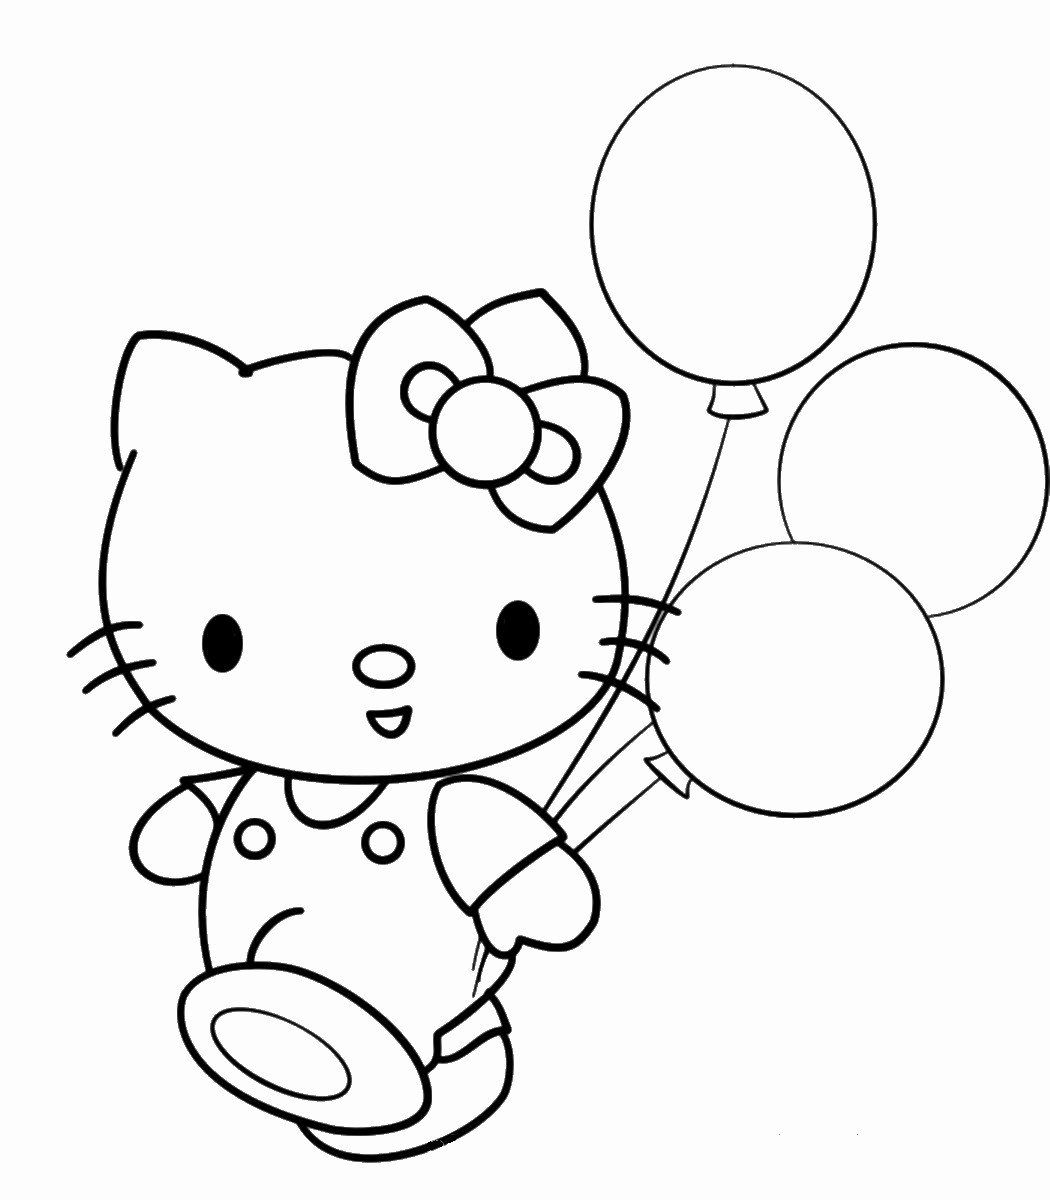 30 Lovely Hot Air Balloon Coloring Page In 2020 Coloring Pages